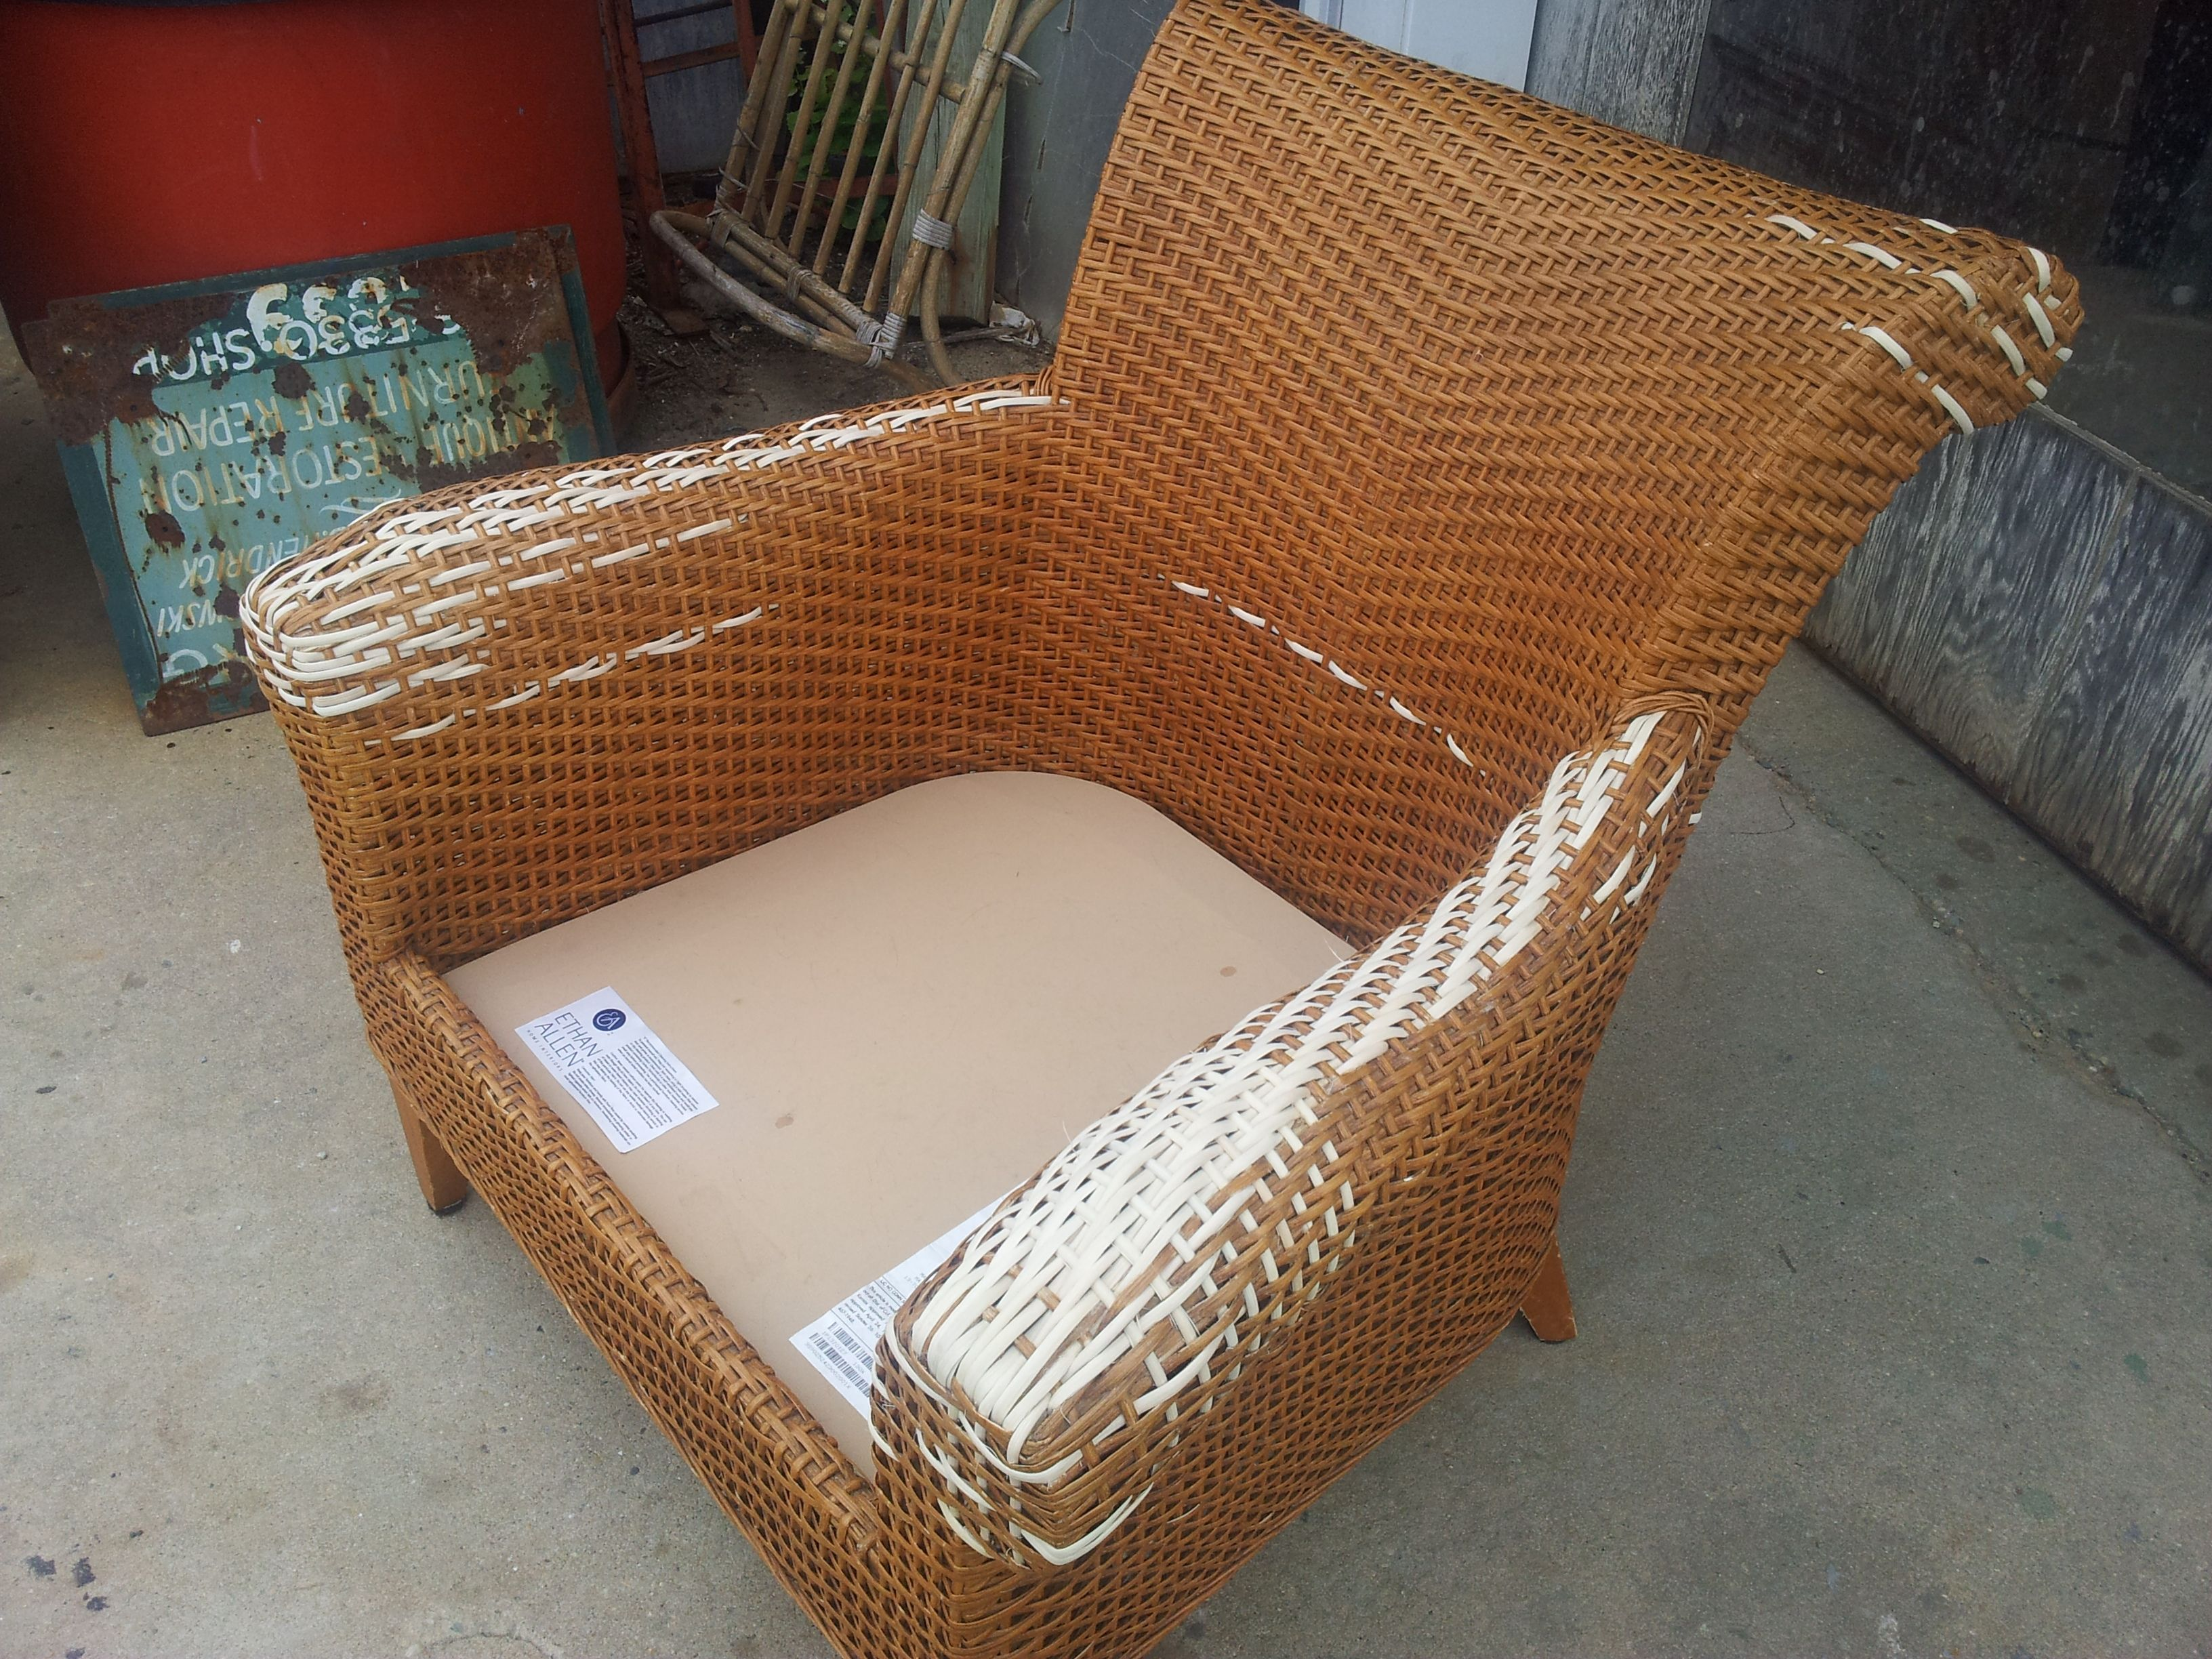 Ethan Allen arm chair repaired caning rush wicker